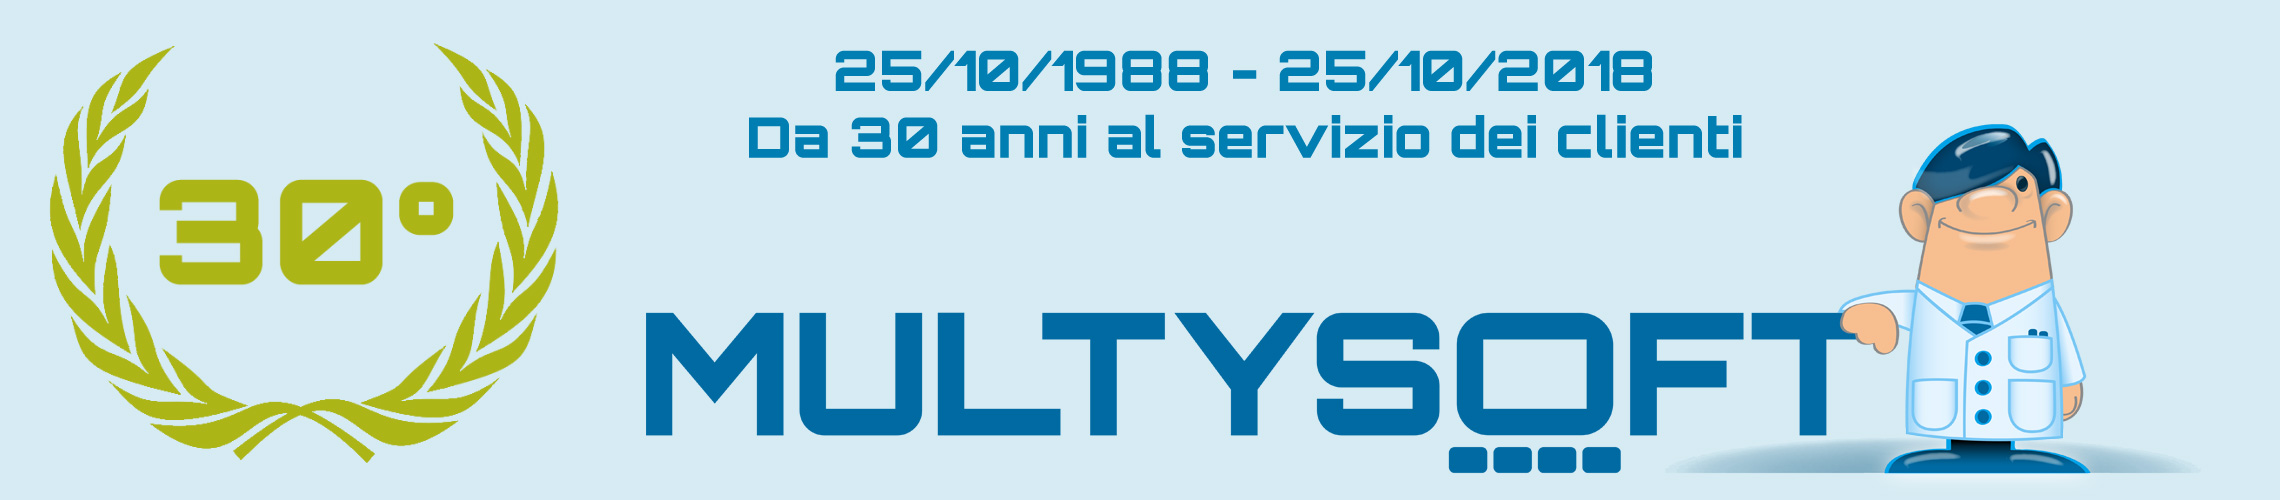 Multysoft Anniversario